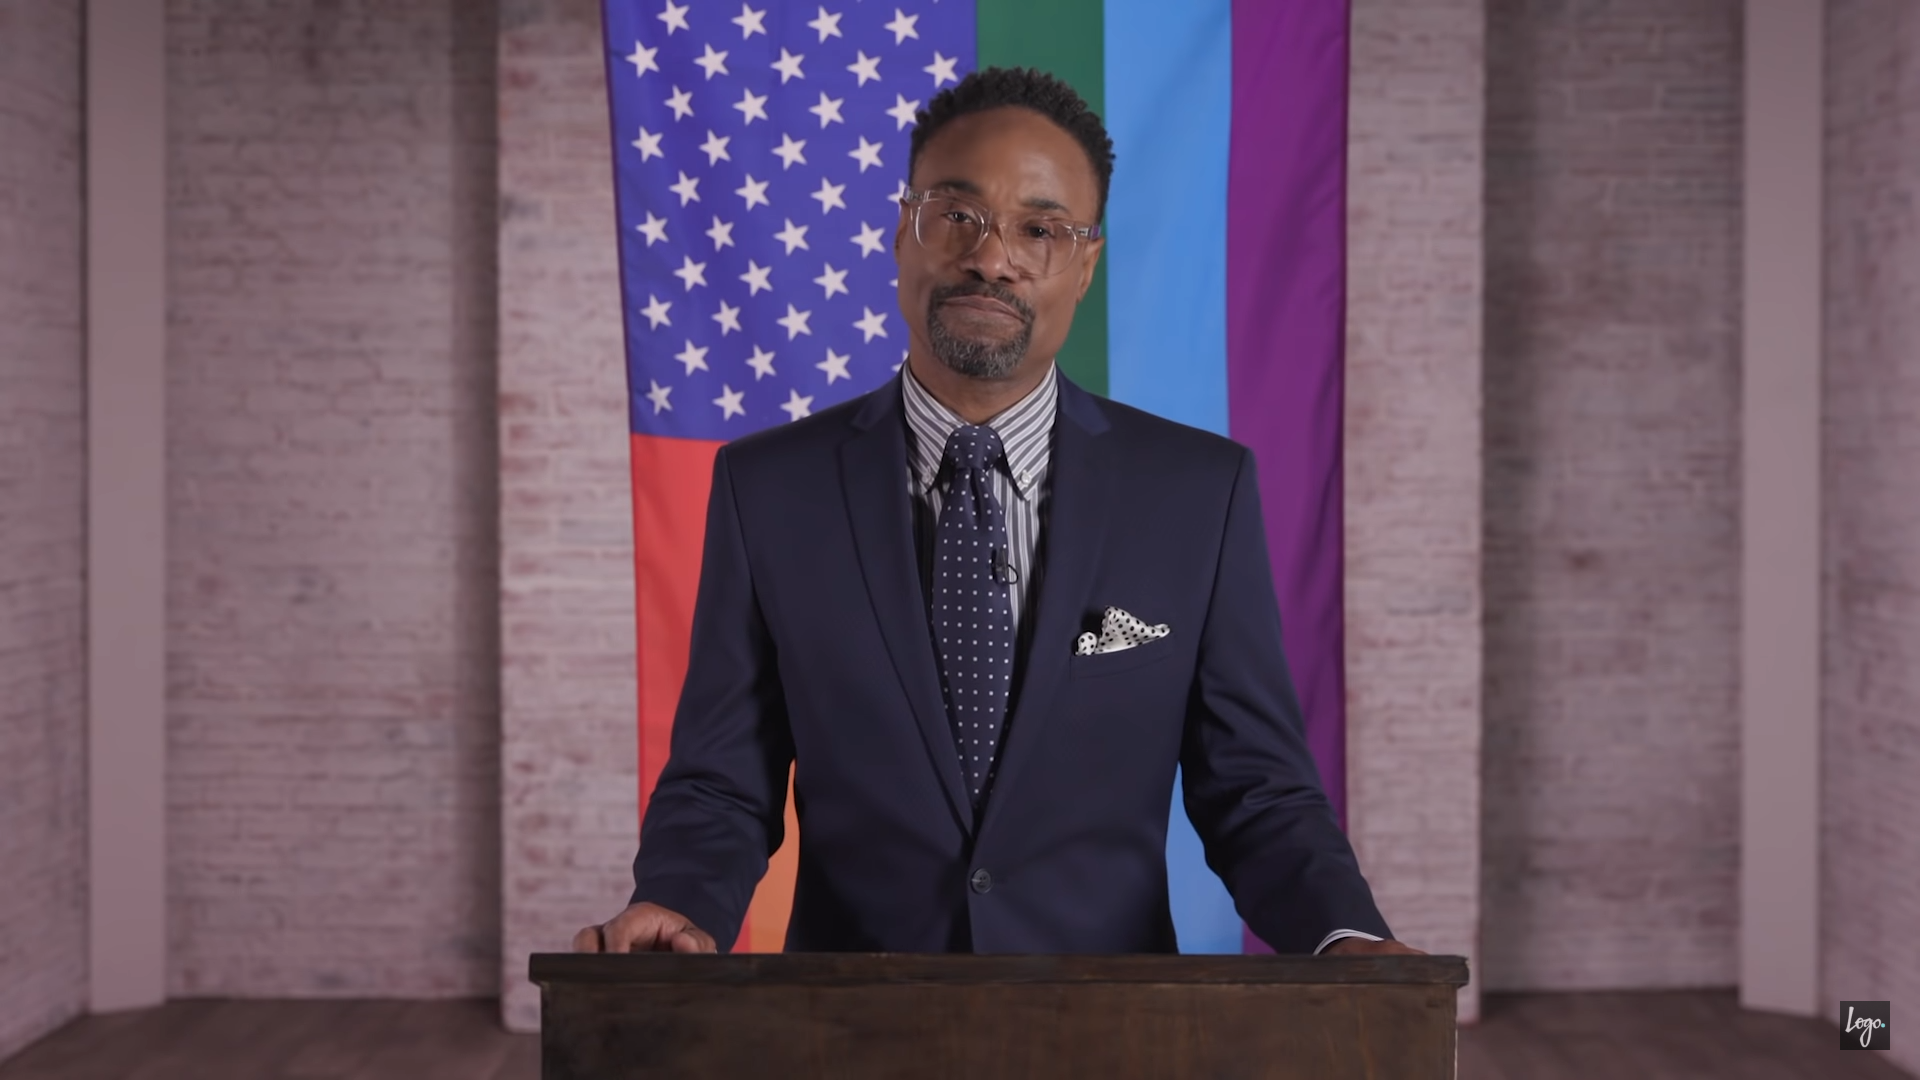 Billy Porter giving an LGBTI State of the Union